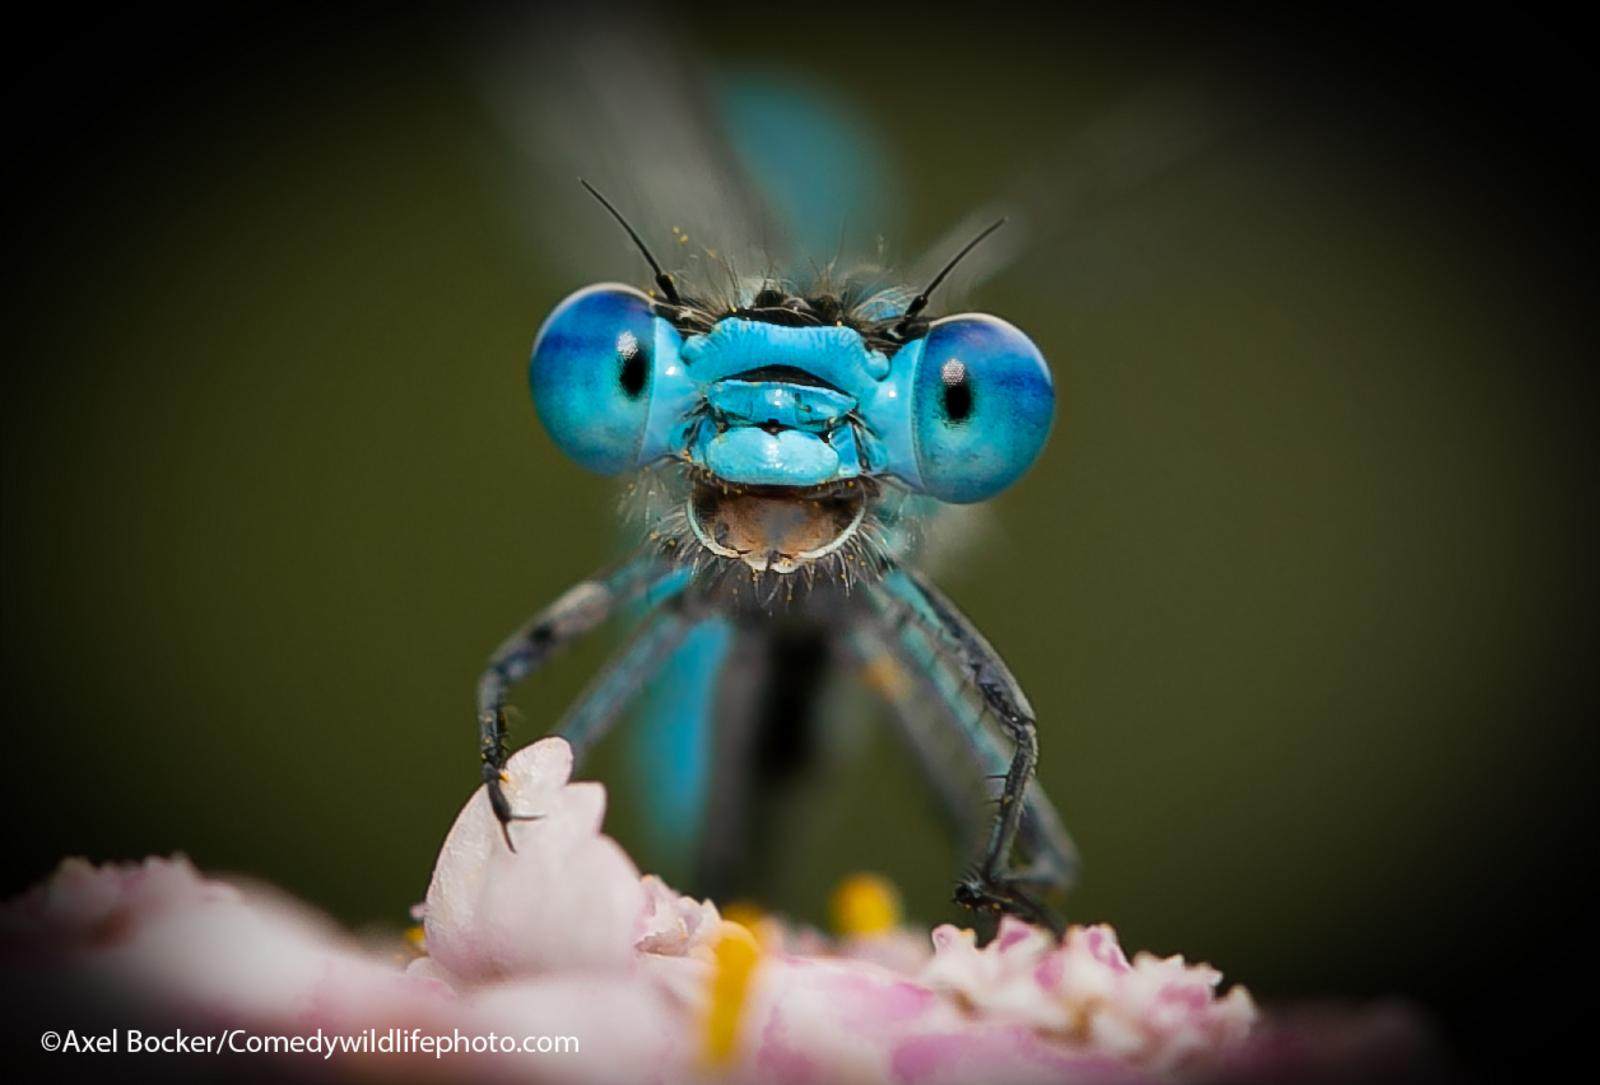 A dragonfly looks like it's laughing into the camera.